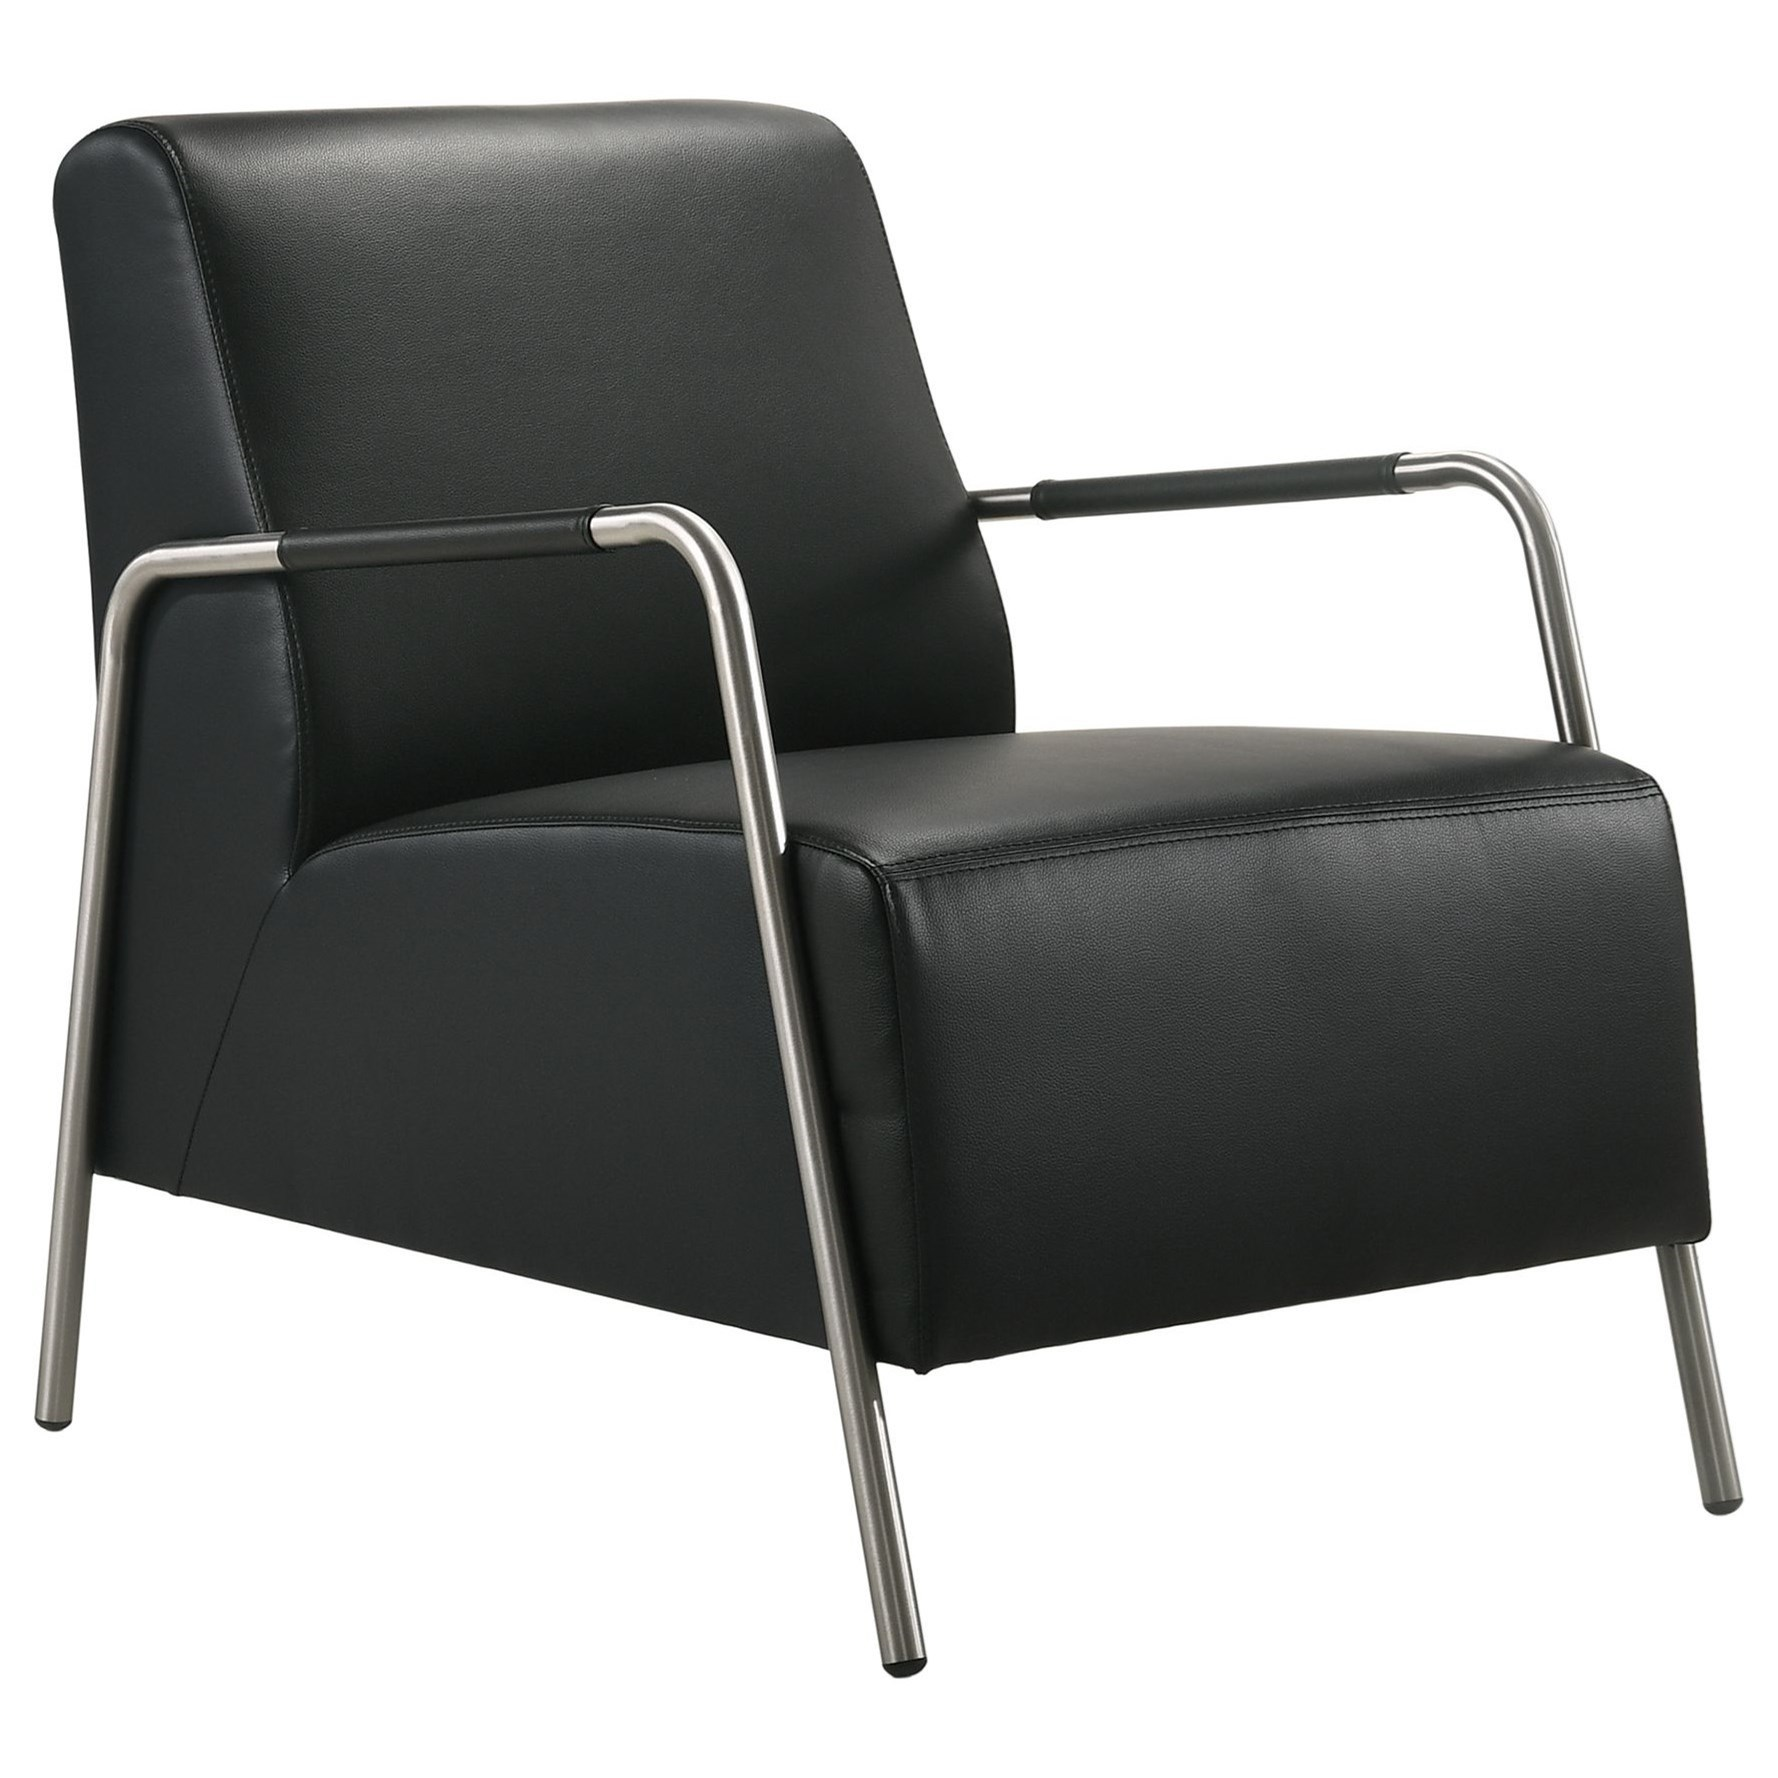 Kuala Modern Accent Arm Chair by Elements International at Goffena Furniture & Mattress Center